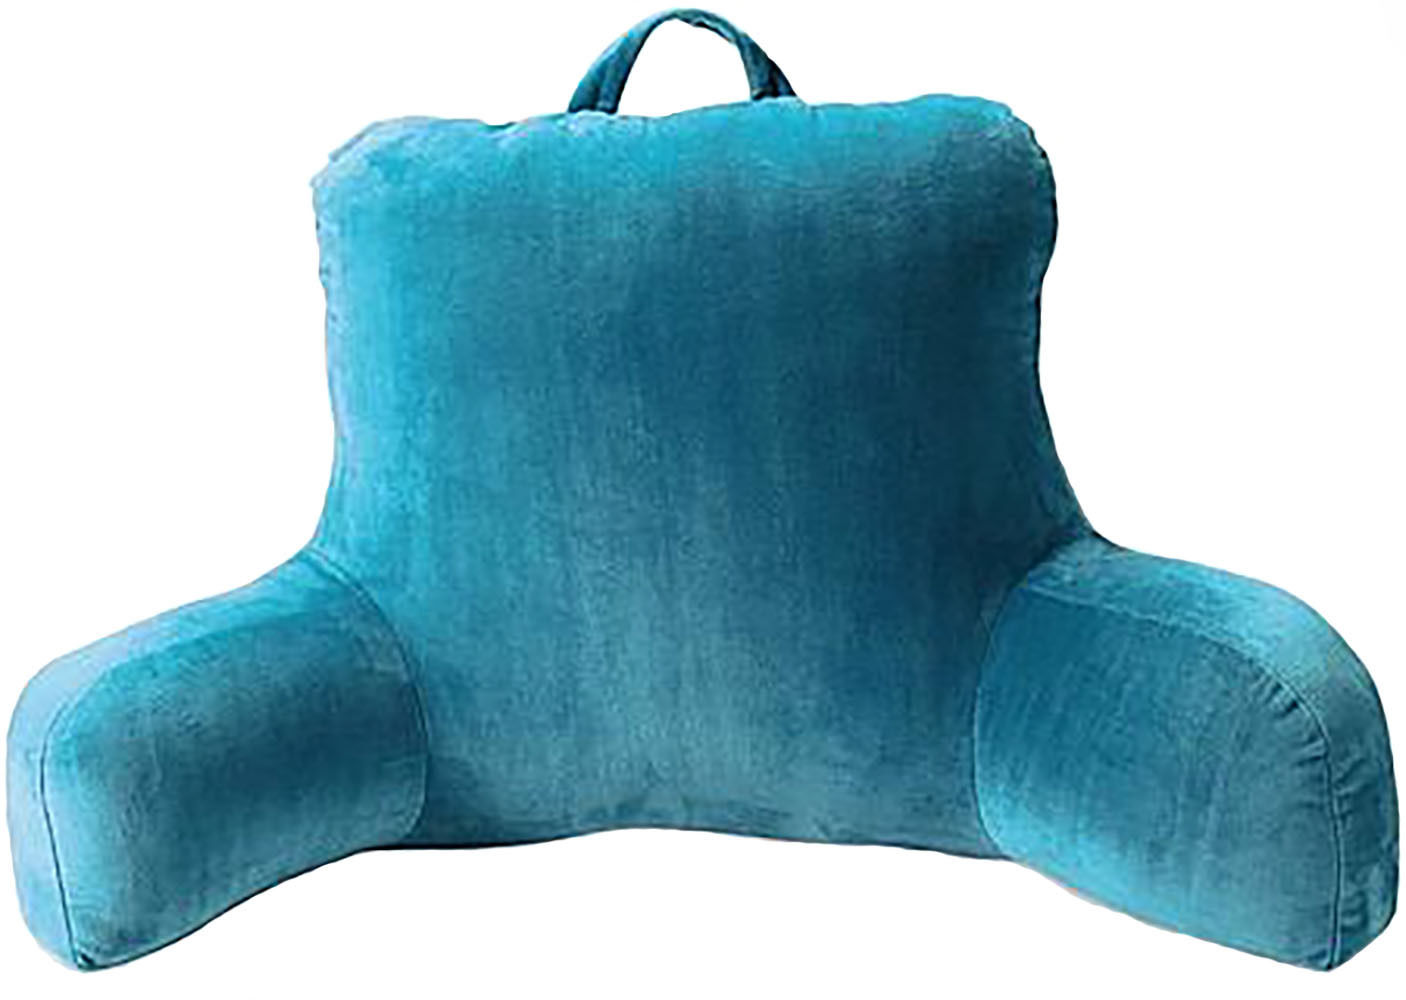 Tel Blue backrest pillow with arms ideas